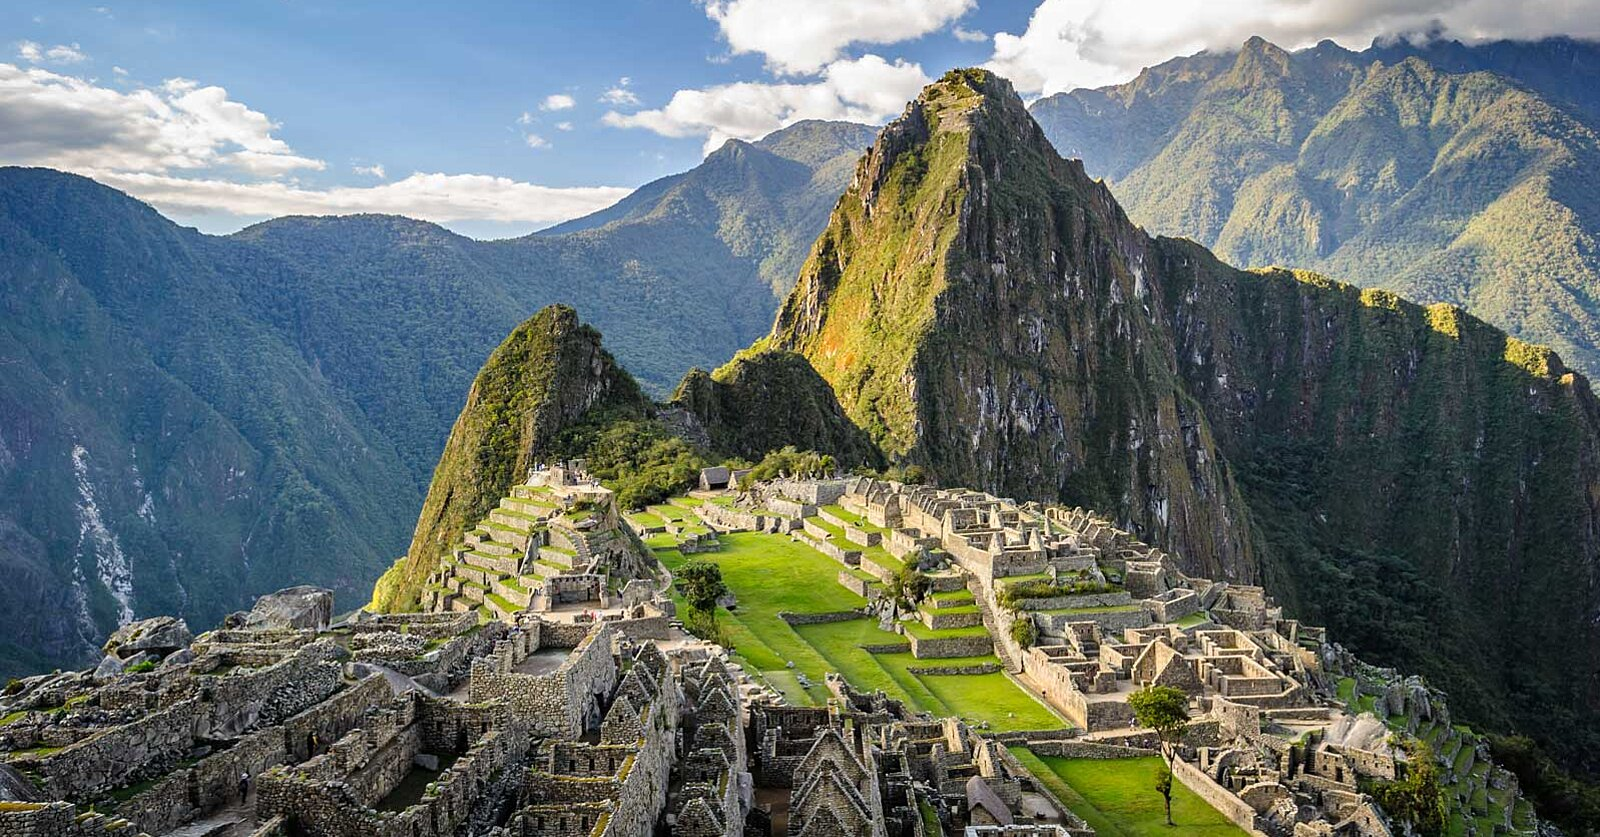 The Ultimate Trip To Peru Planned By Travel Leisure Editors Travel Leisure